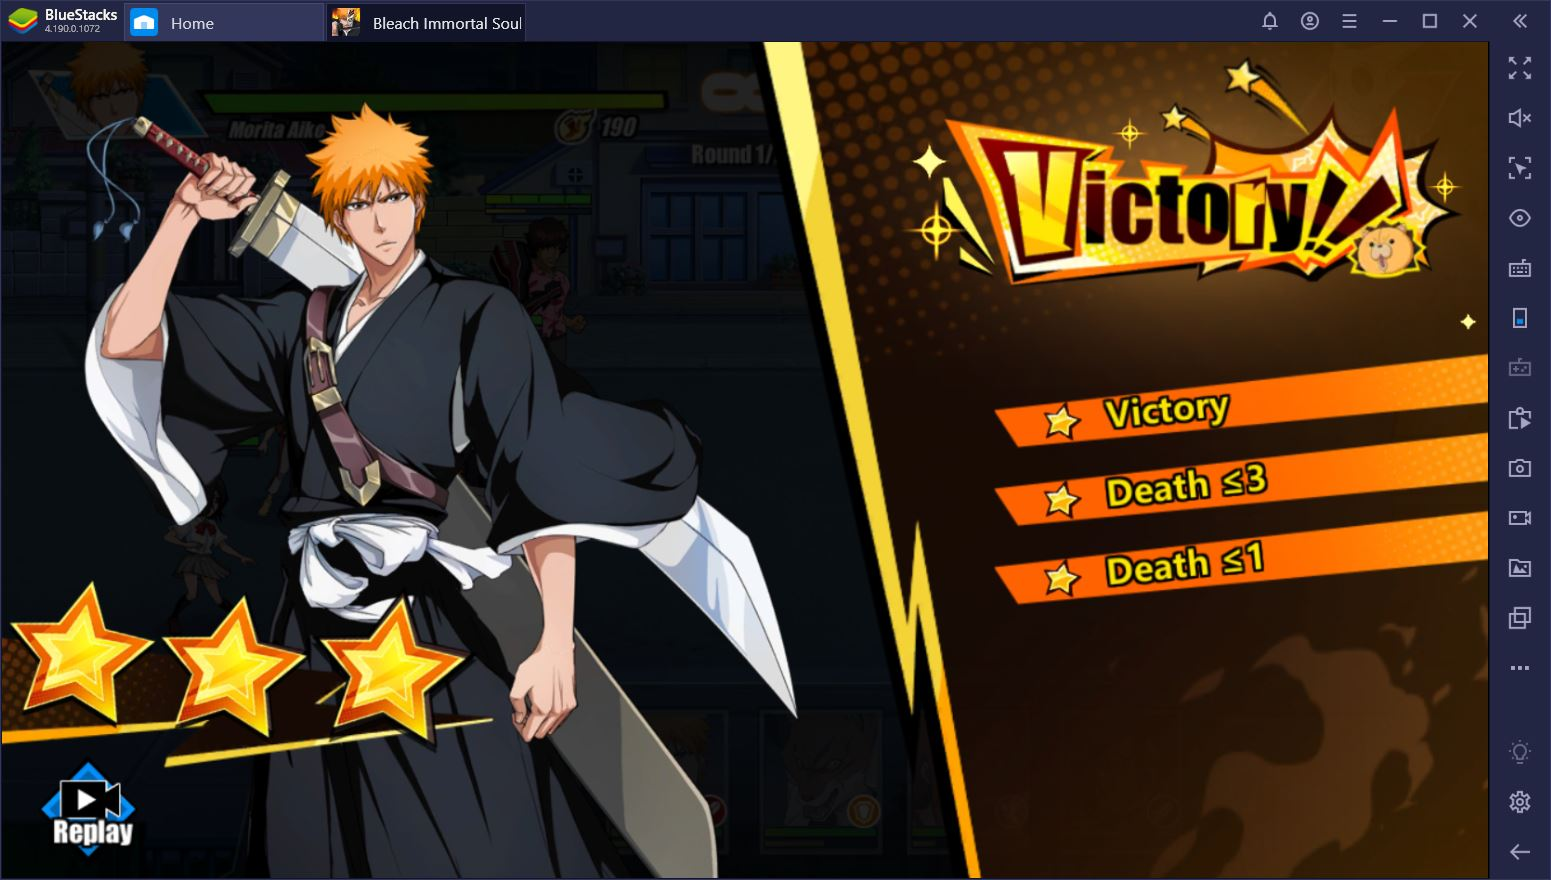 Bleach: Immortal Soul on PC – How to Best Use Your Stamina